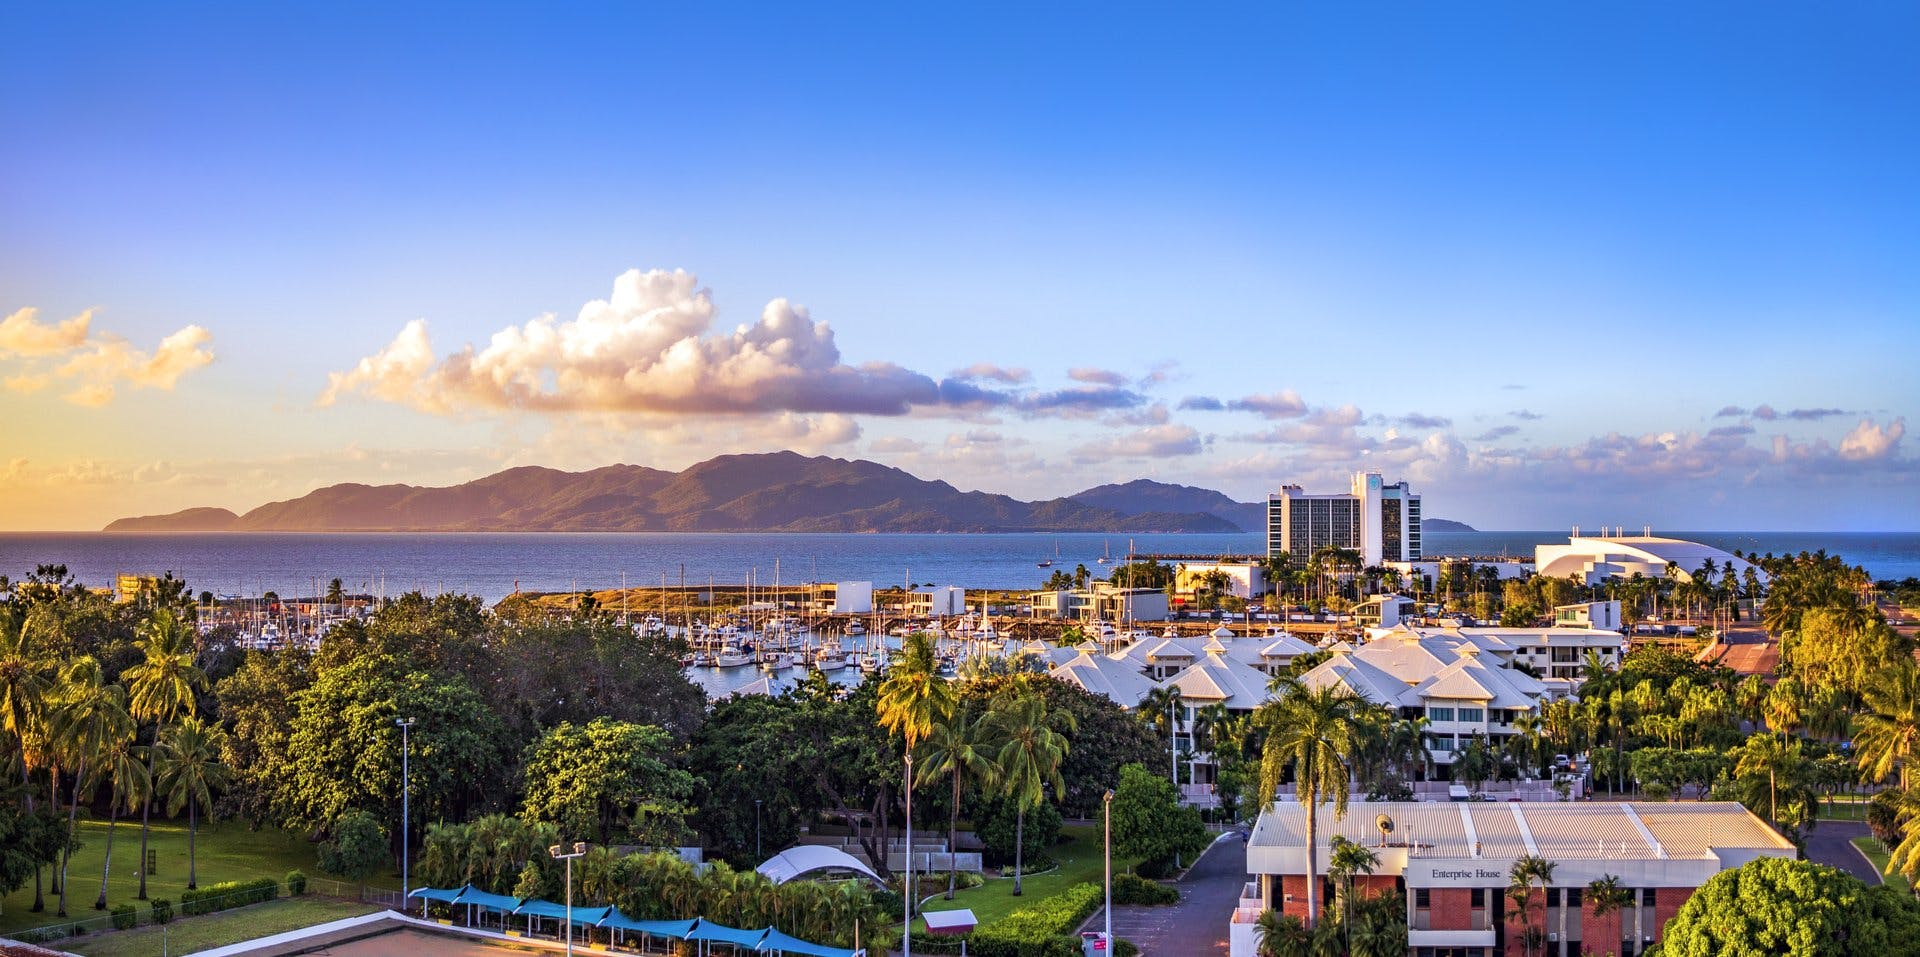 Townsville Multisport World Championship to be held in August 2022